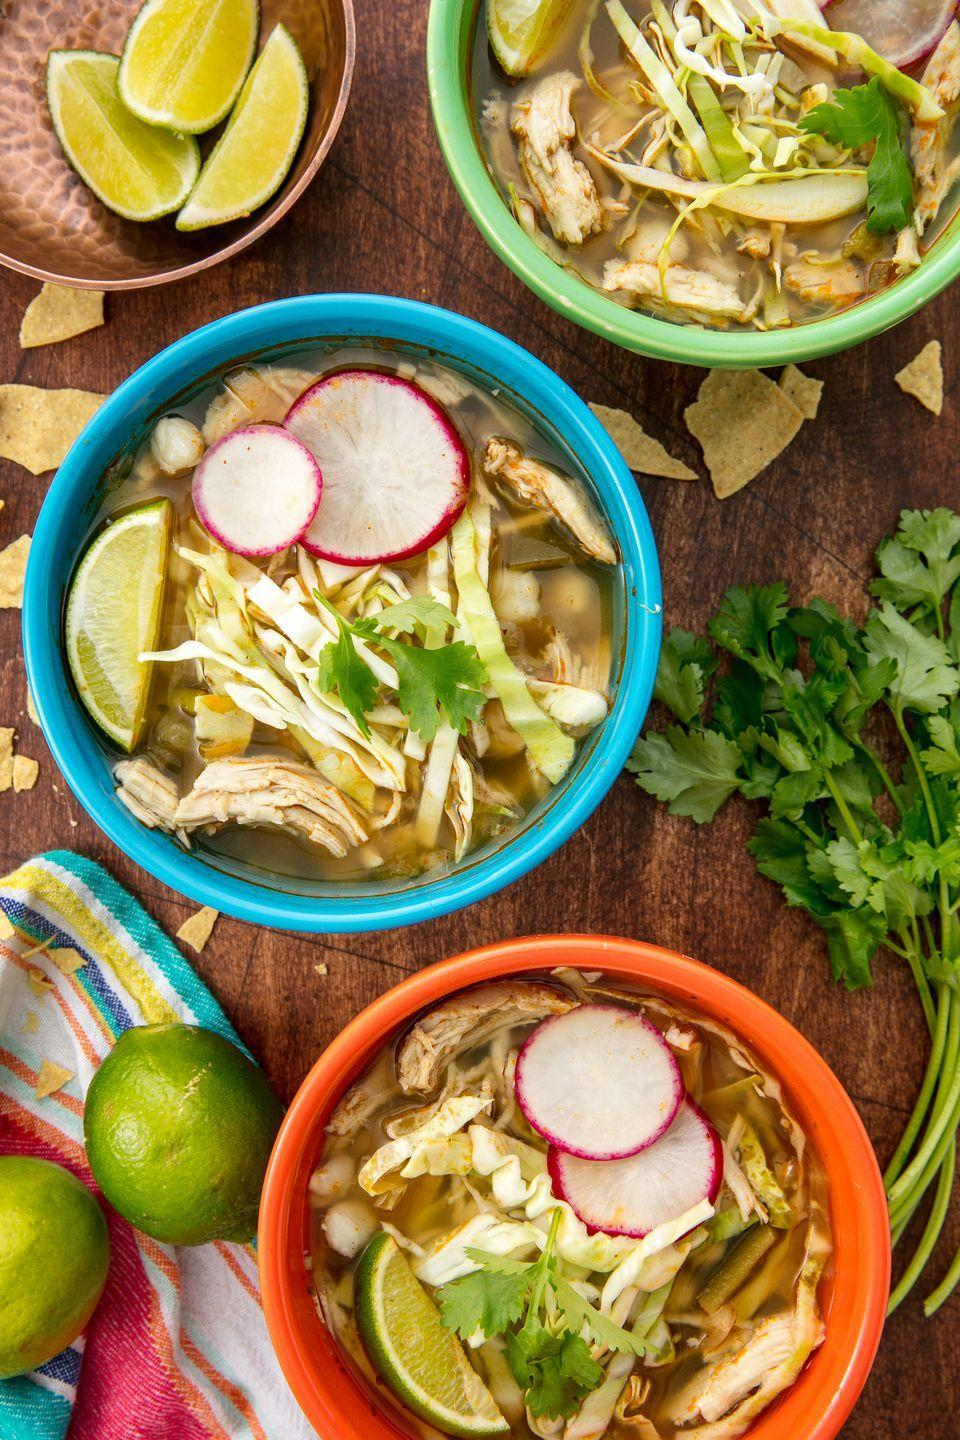 "<p>Enjoy the comfort of this Mexican favorite without any of the work.</p><p>Get the recipe from <a href=""https://www.delish.com/cooking/recipe-ideas/recipes/a55758/crock-pot-mexican-posole-recipe/"" rel=""nofollow noopener"" target=""_blank"" data-ylk=""slk:Delish"" class=""link rapid-noclick-resp"">Delish</a>.</p>"